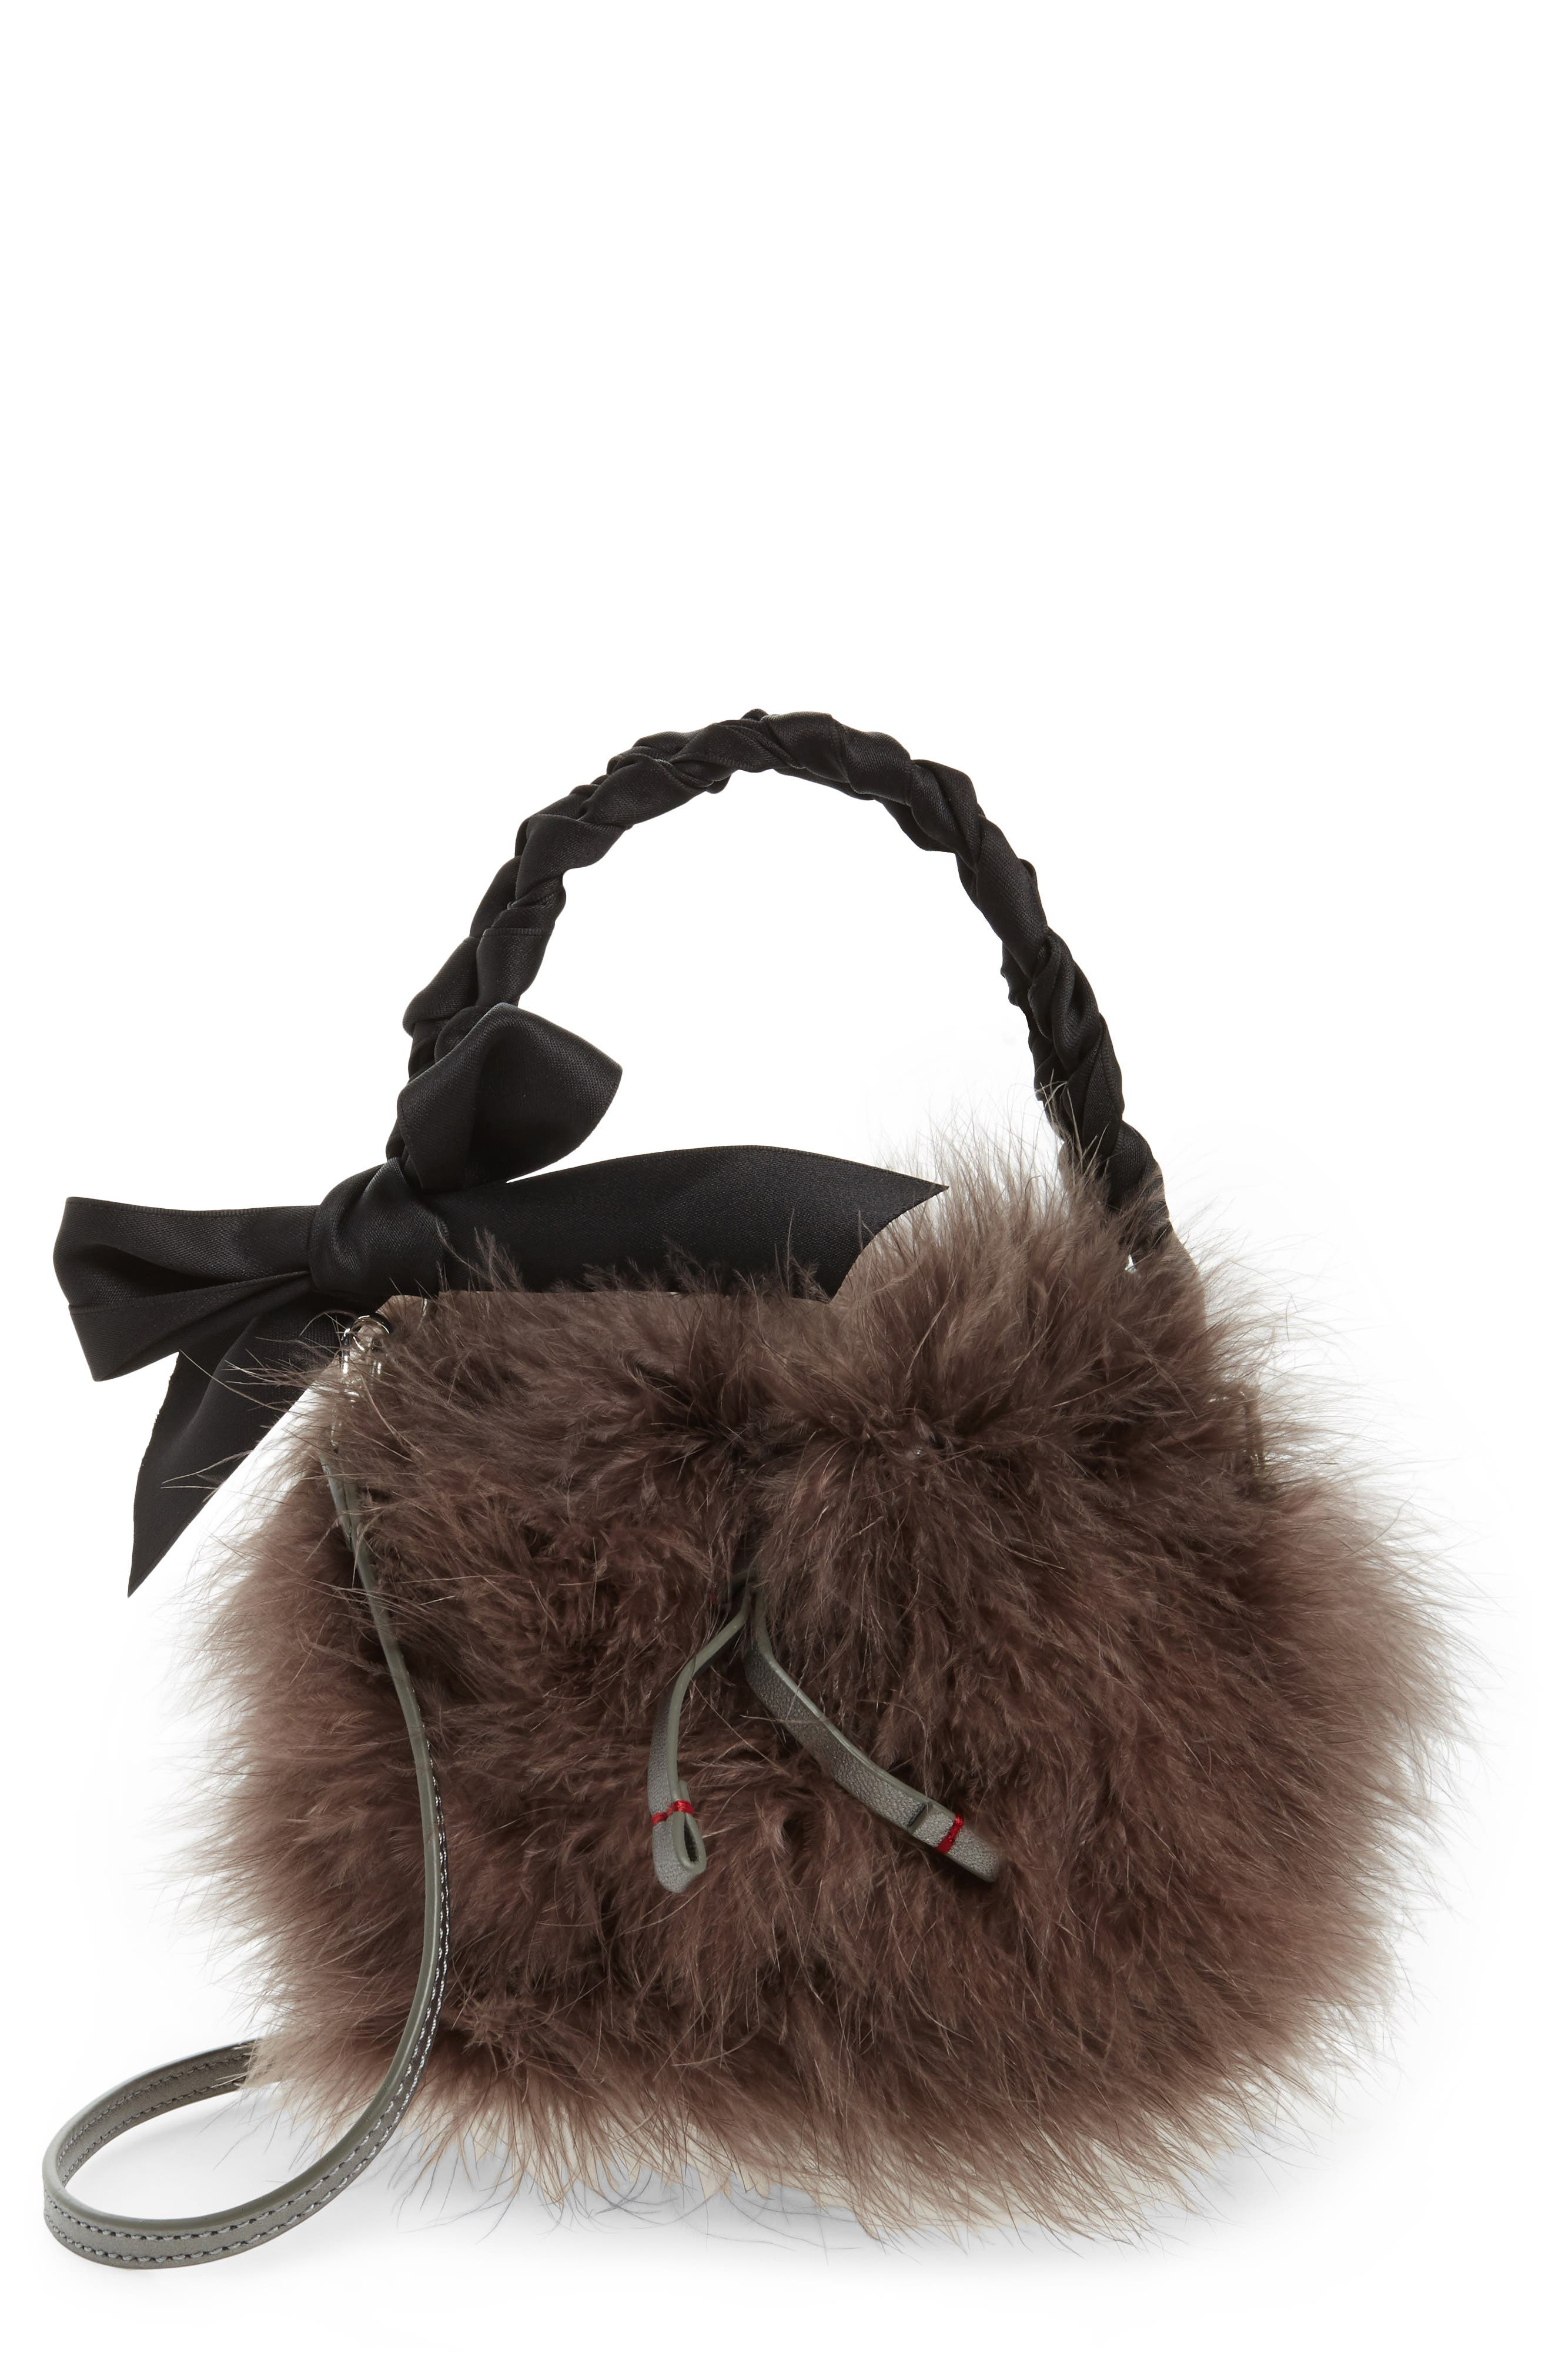 Alternate Image 1 Selected - Frances Valentine Small Calfskin Leather & Feather Bucket Bag